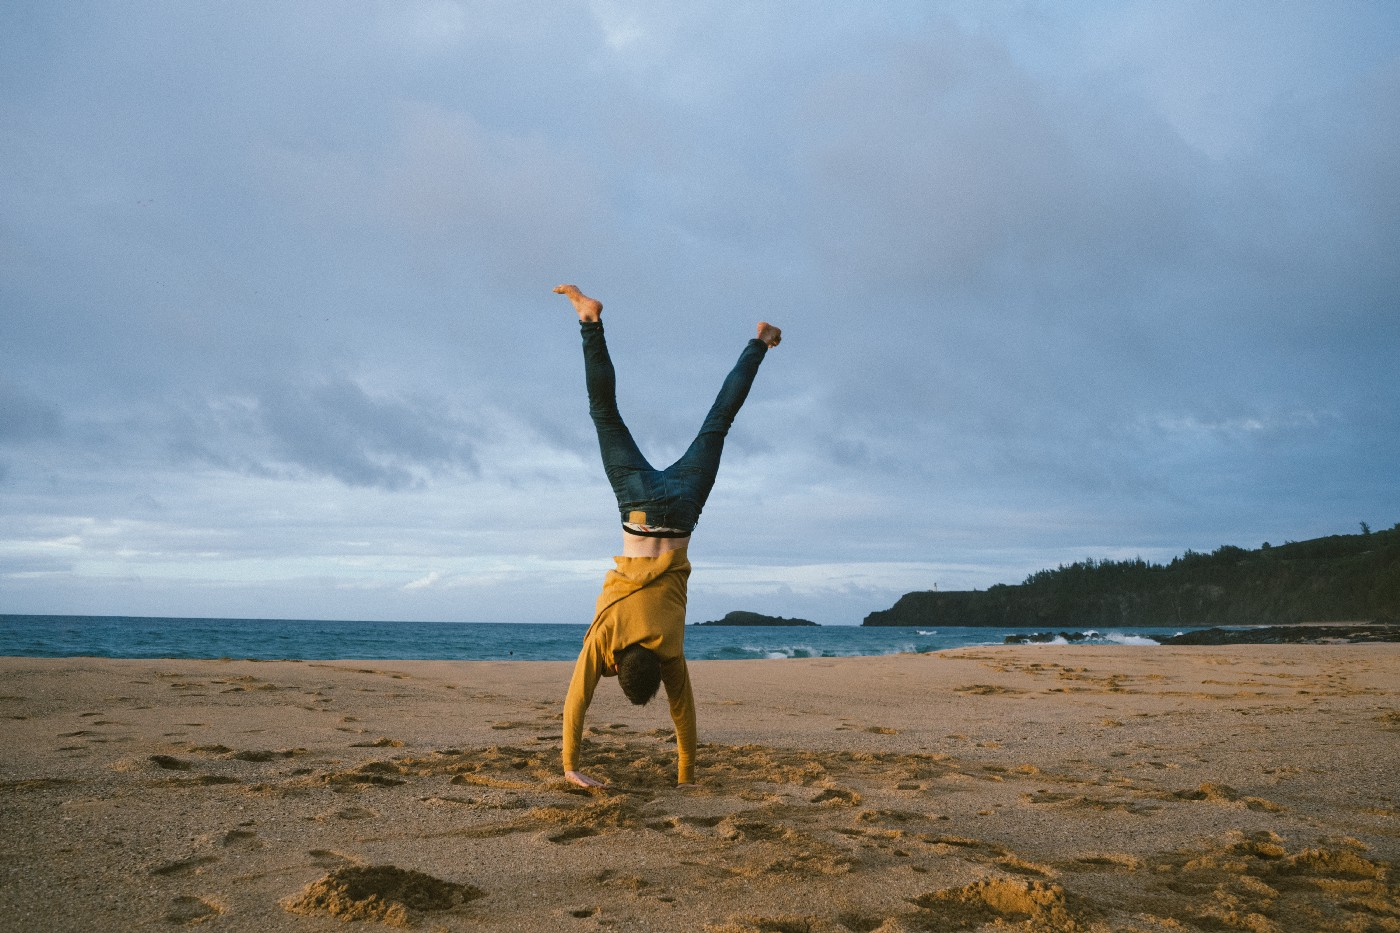 Person doing a cartwheel on the beach.